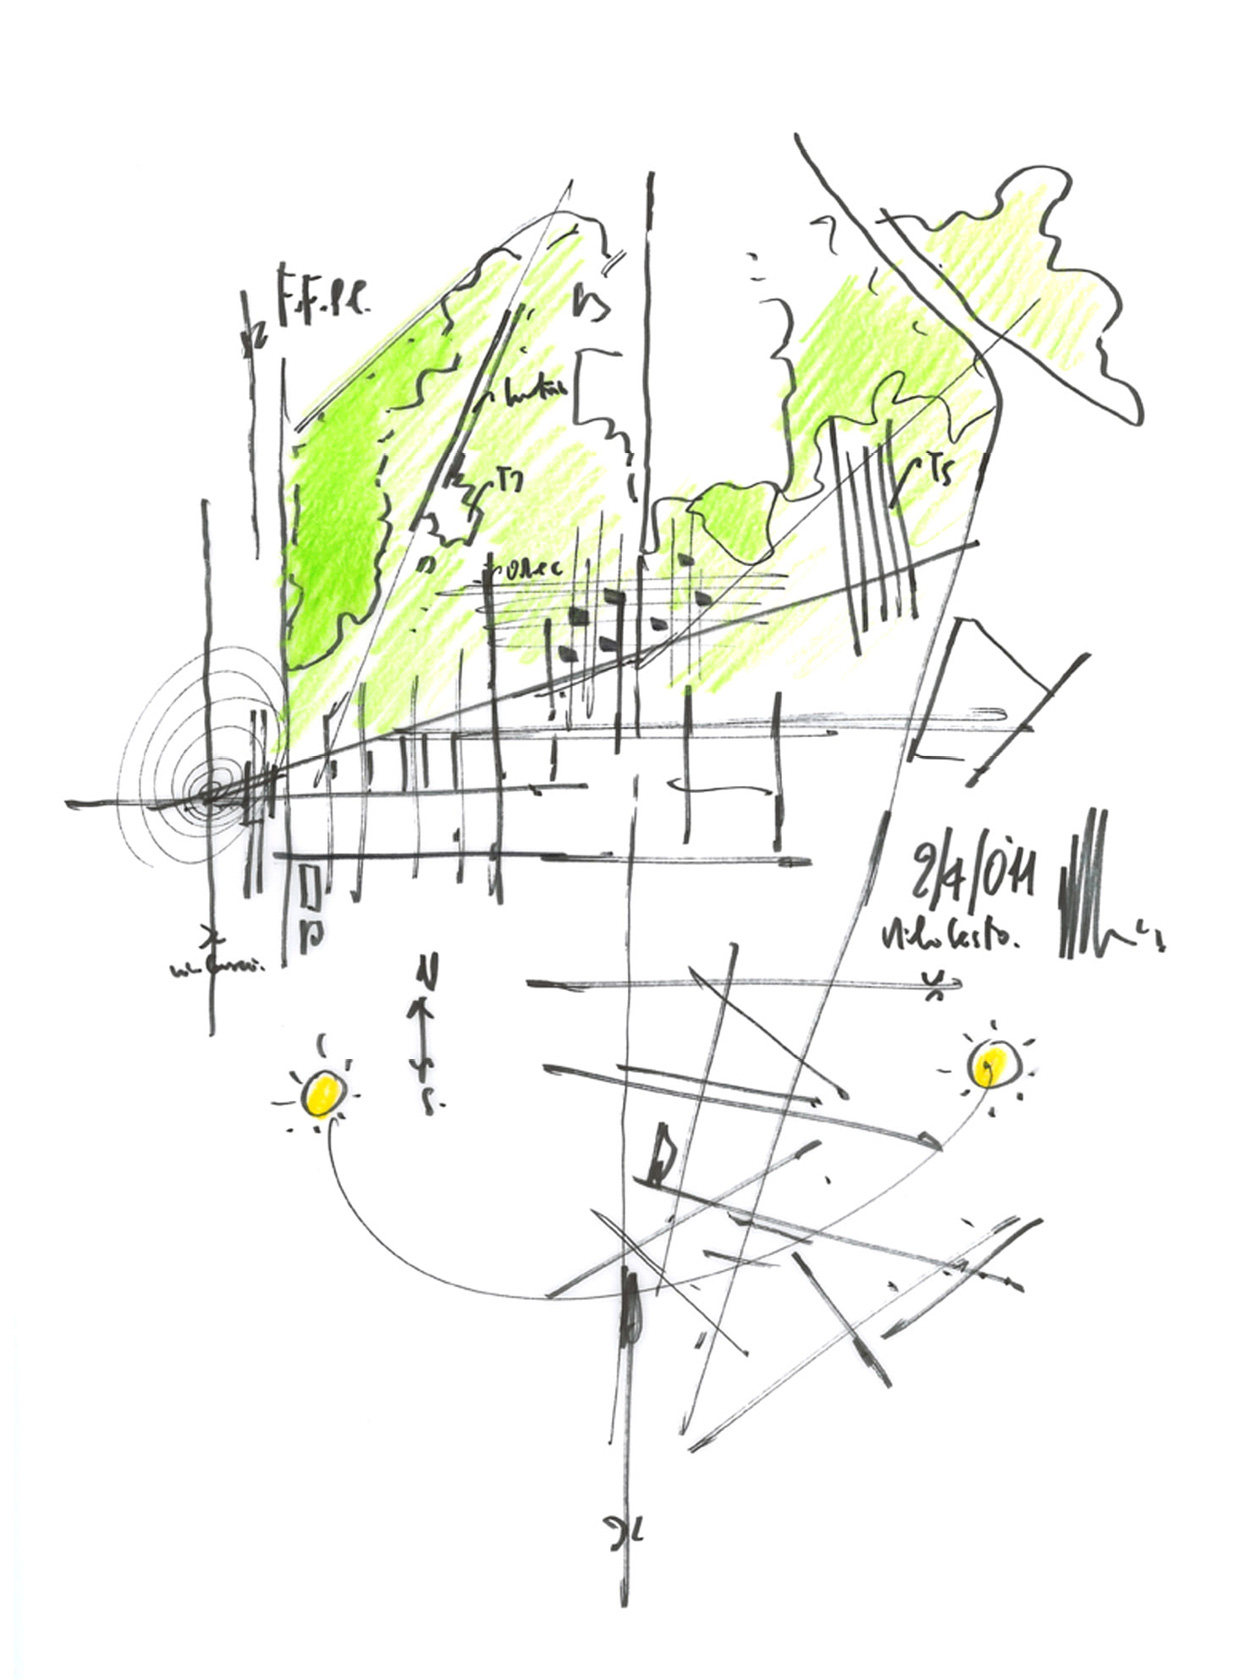 The Revenge of peripheries: A Masterplan by Renzo Piano